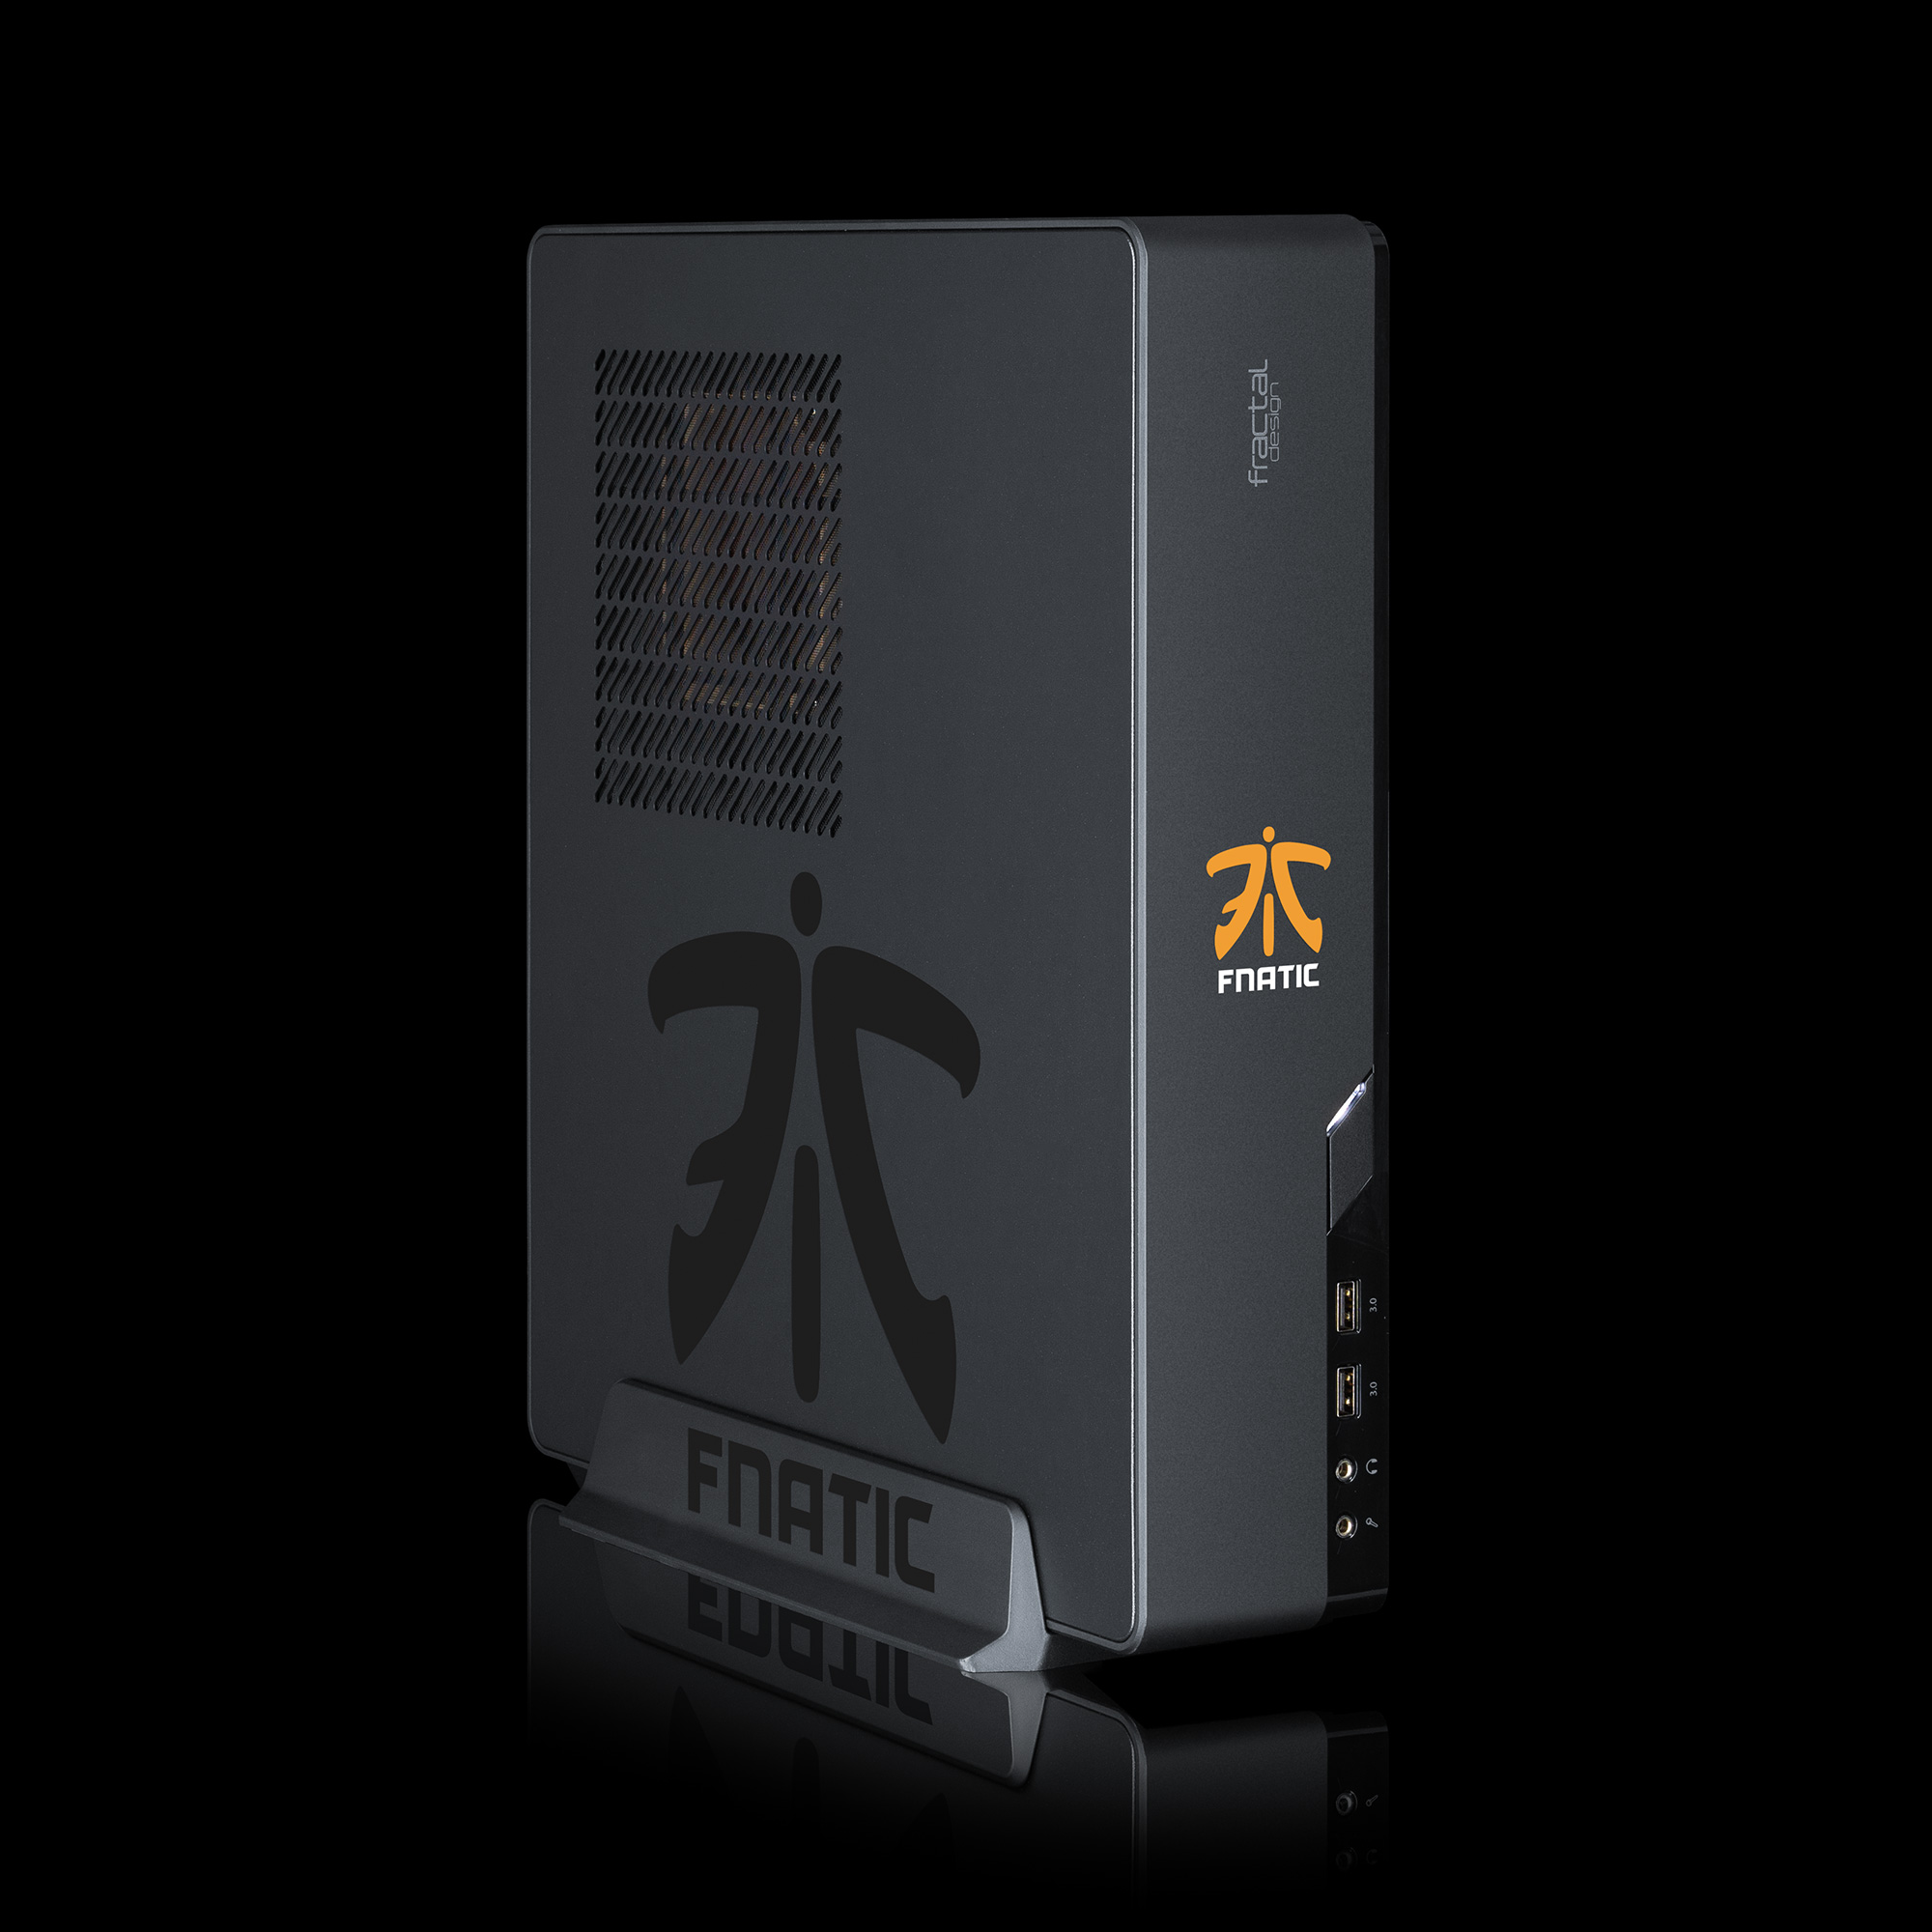 Console Informatique Fly Chillblast Fnatic Gtx 1060 Ryzen 5 Games Console